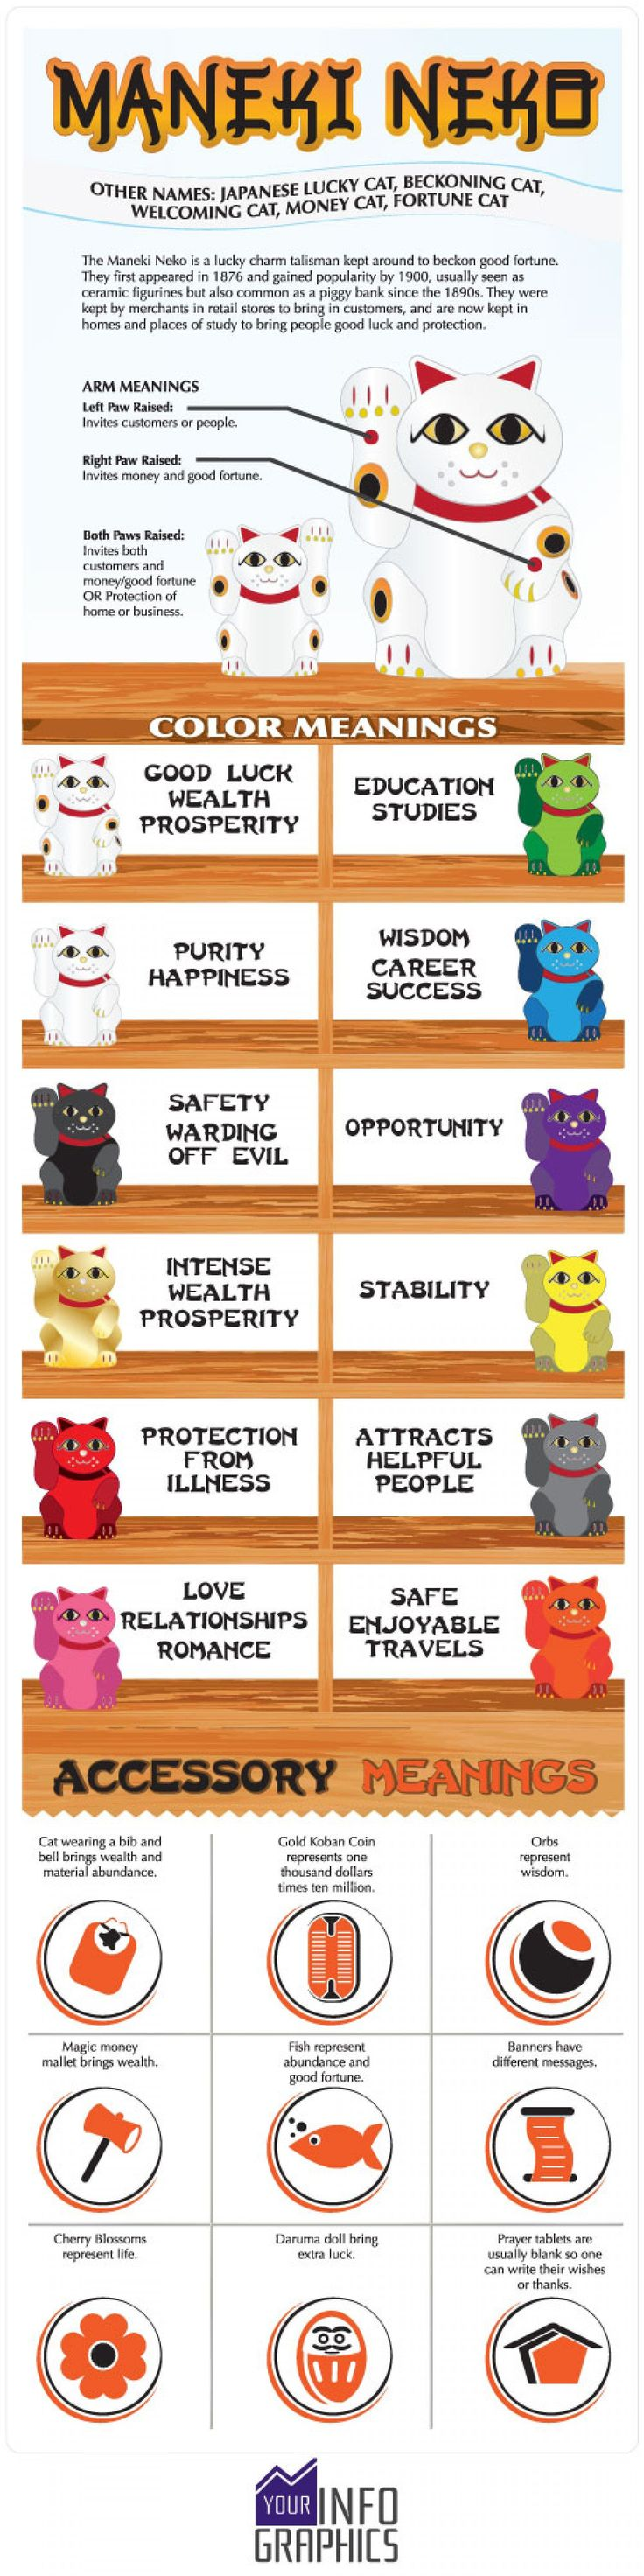 Maneki Neko Lucky Cat Infographic #Infographic #LuckyCatInfographic #LuckyCat #ManekiNeko